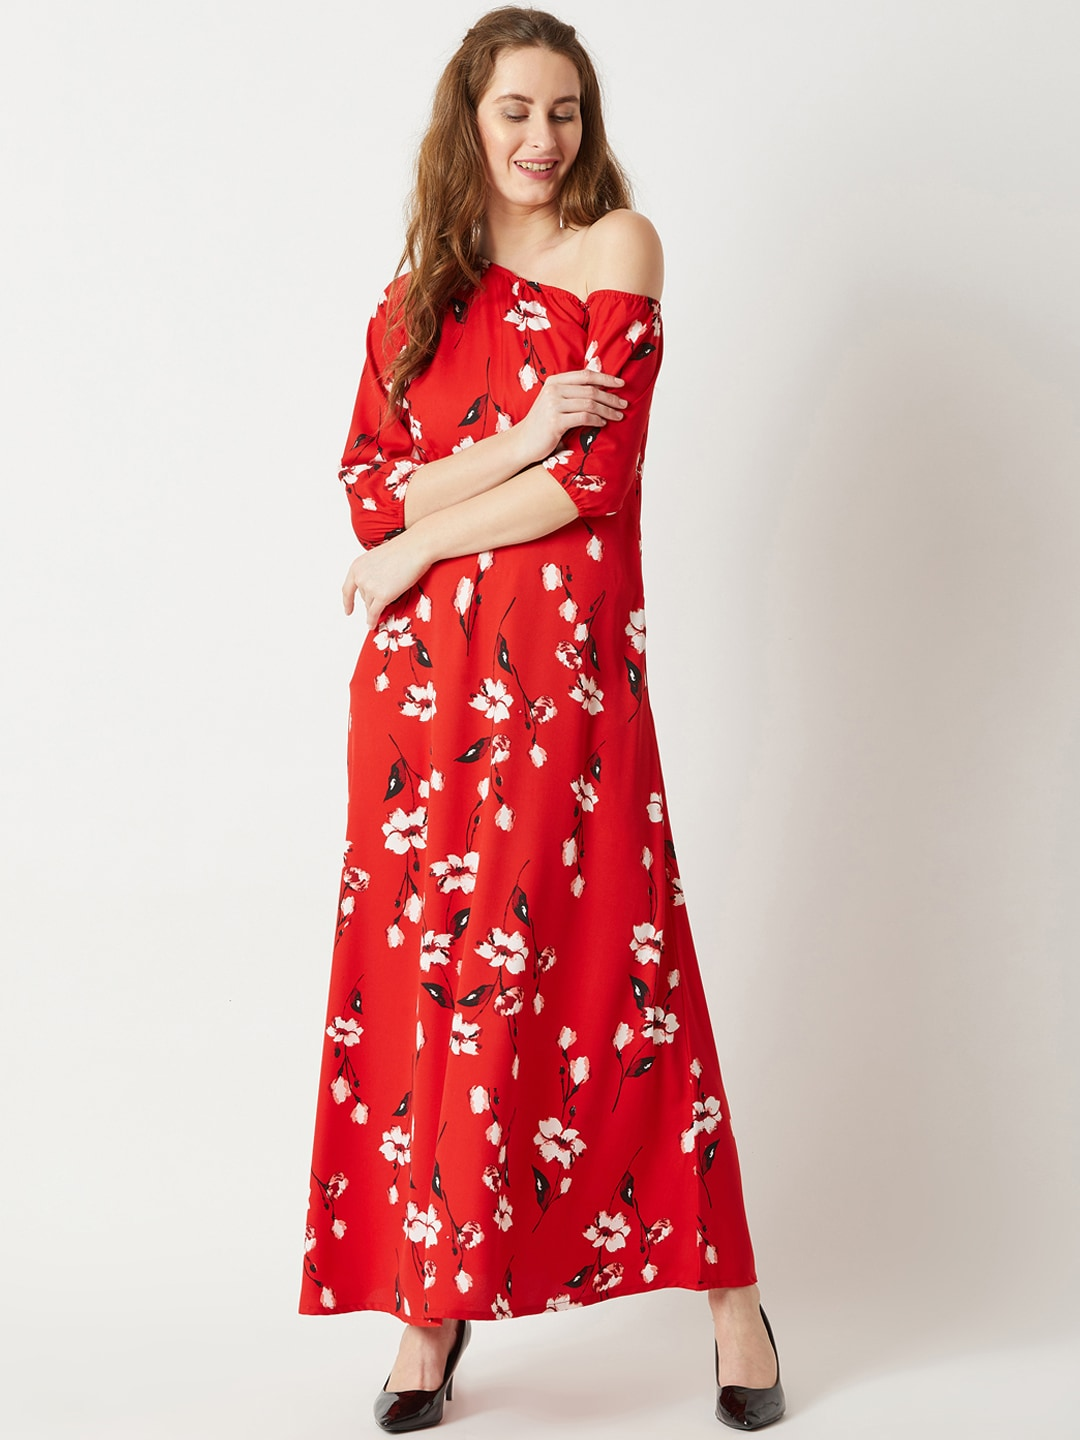 579784cbb2e Red Dress - Buy Trendy Red Colour Dresses Online in India